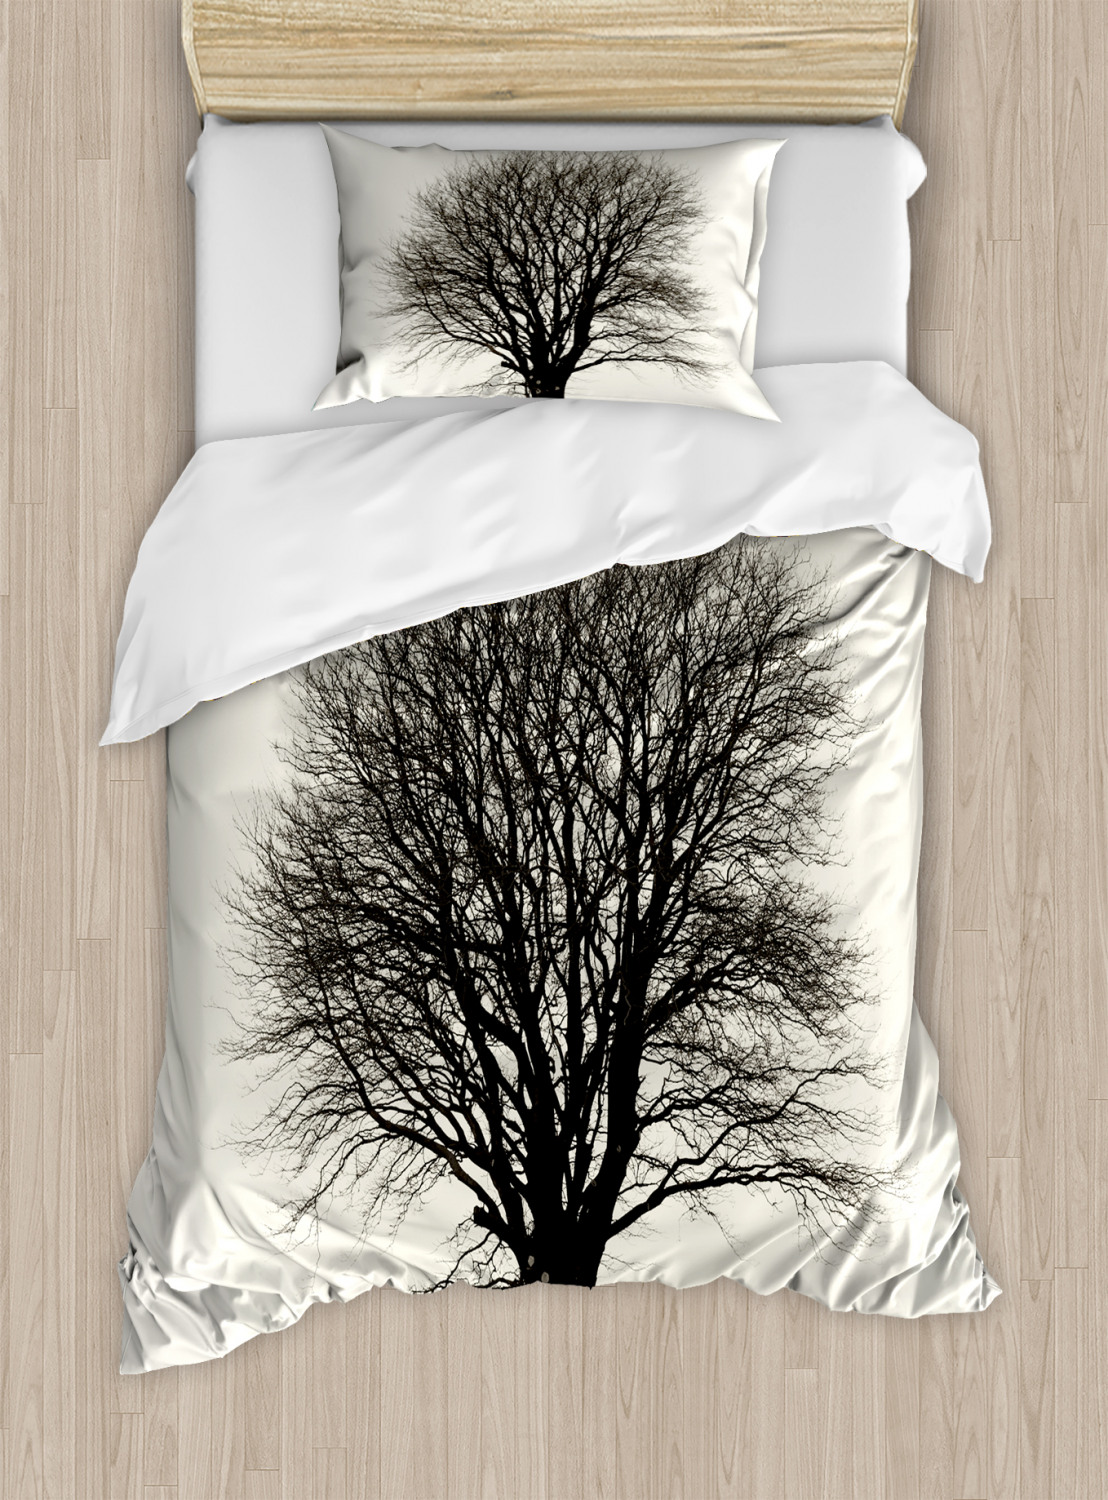 Black And White Duvet Cover Set Lonely Tree In Field With Many Leafless Branches Countryside Vintage Decorative Bedding Set With Pillow Shams Ivory Dark Grey By Ambesonne Walmart Com Walmart Com